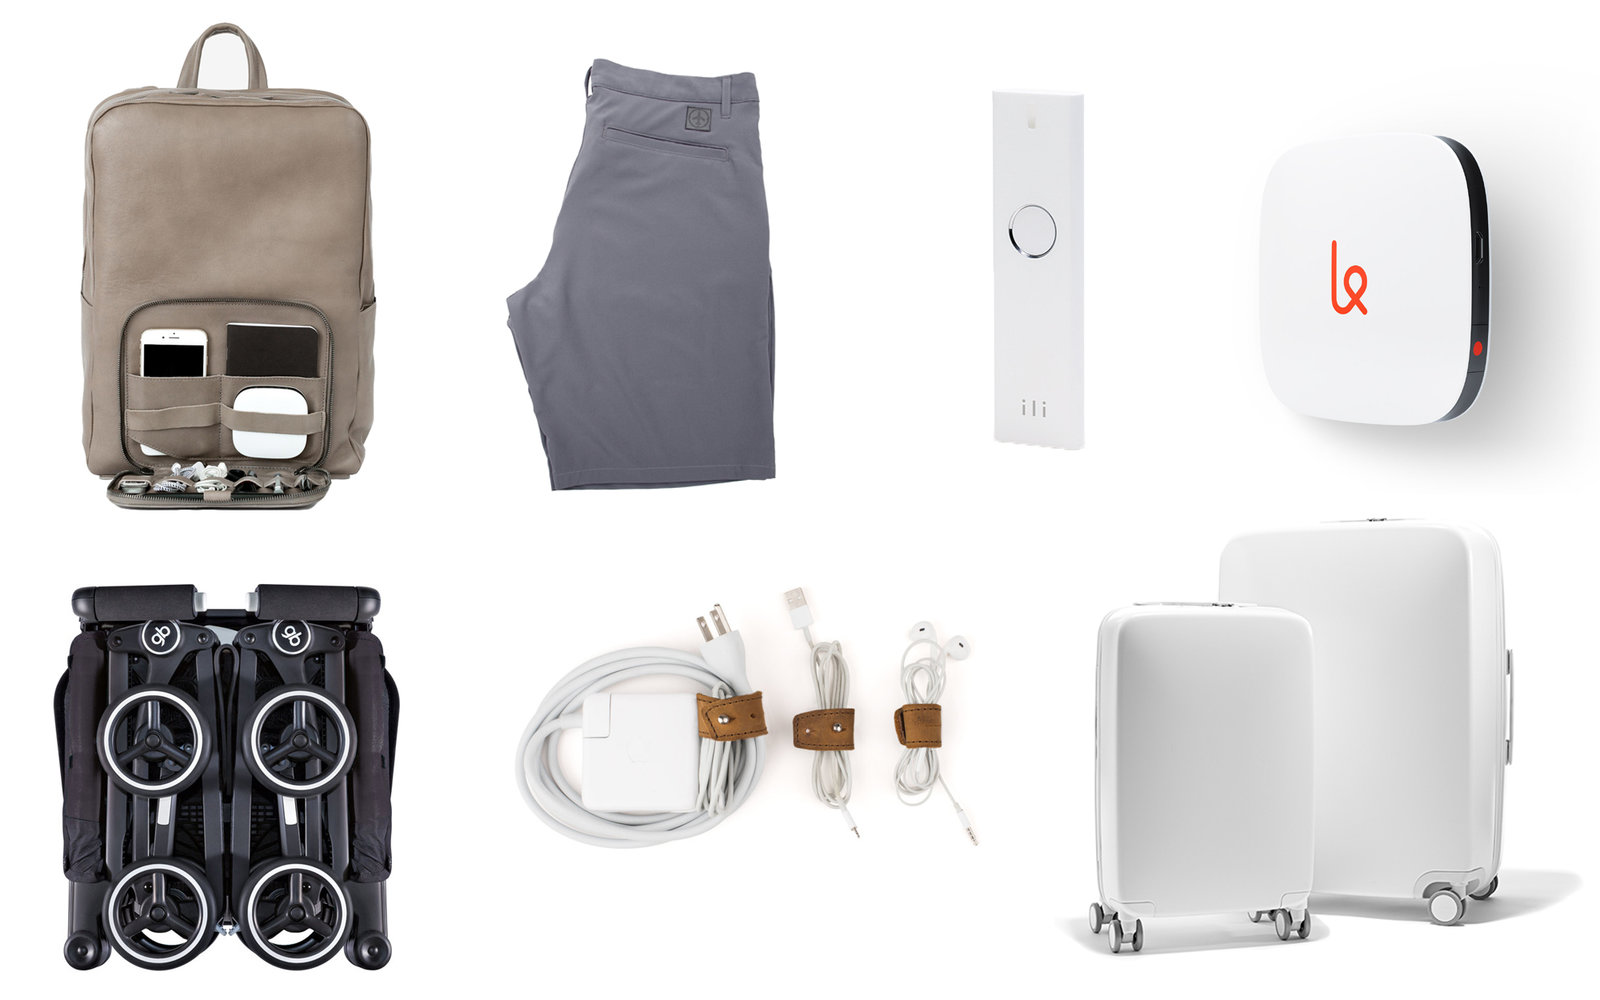 6 New, Cool Travel Products You'll Want for Your Next Vacation